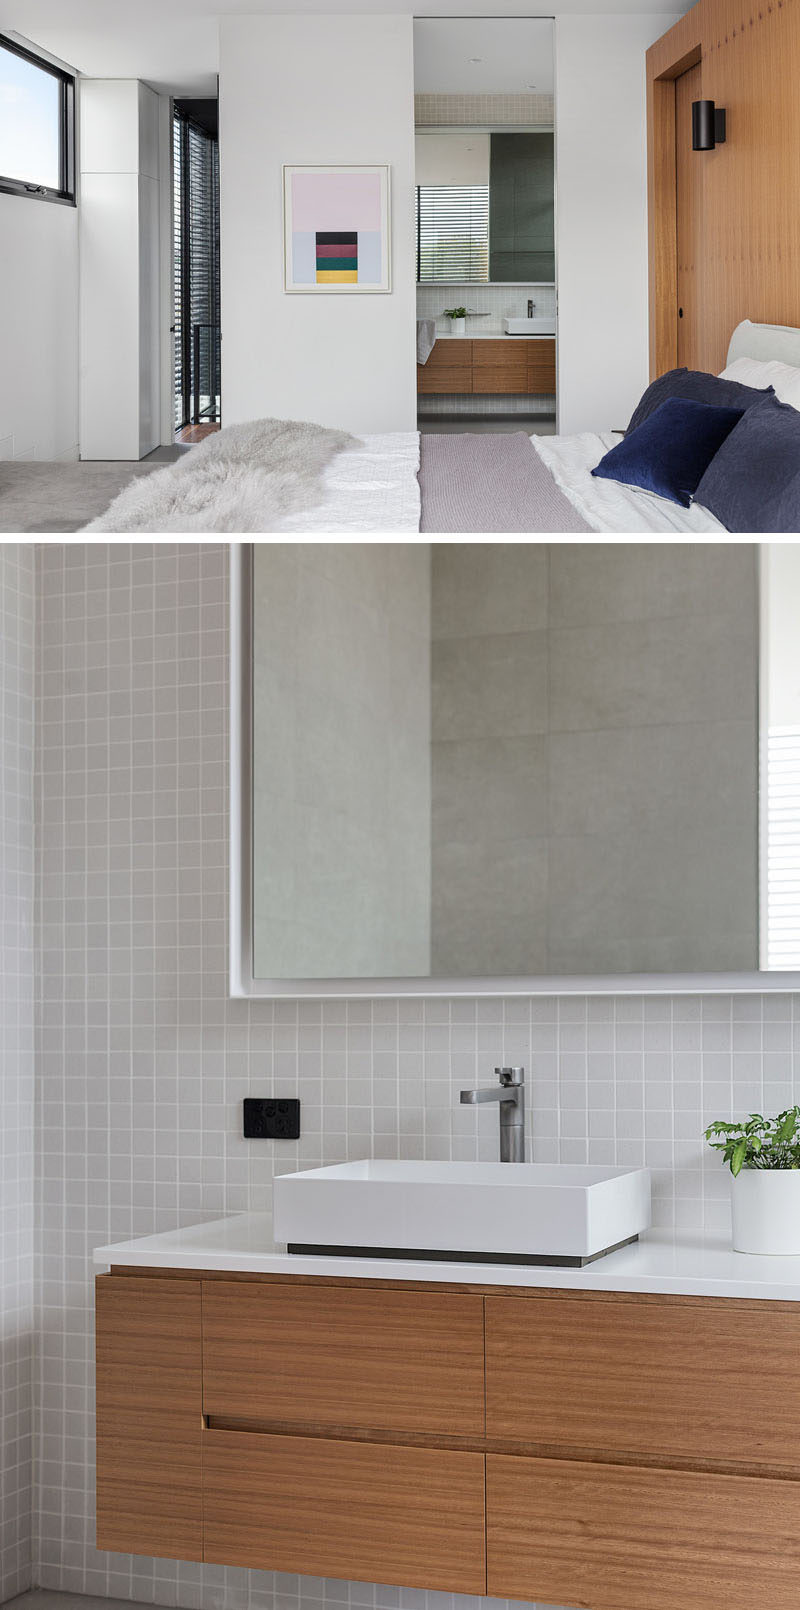 A wood vanity in this modern bathroom is topped with a white counter and basin, while light colored square tiles cover the walls. #ModernBathroom #BathroomDesign